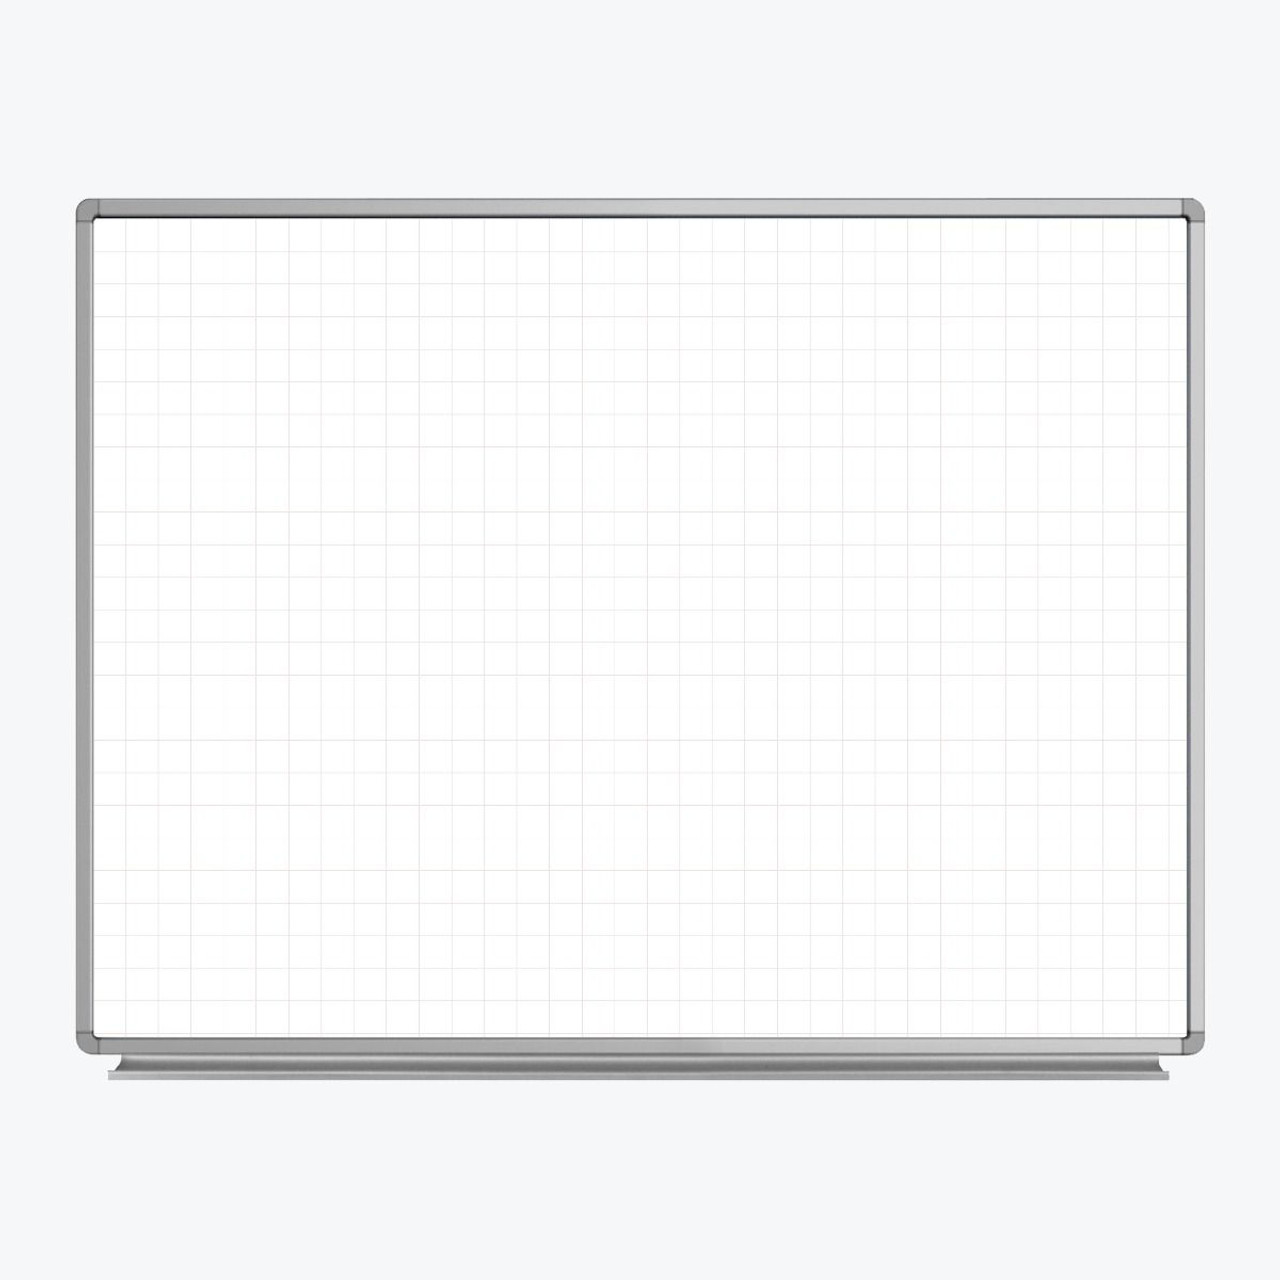 48 x 36 Wall-Mounted Magnetic Ghost Grid Whiteboard WB4836LB